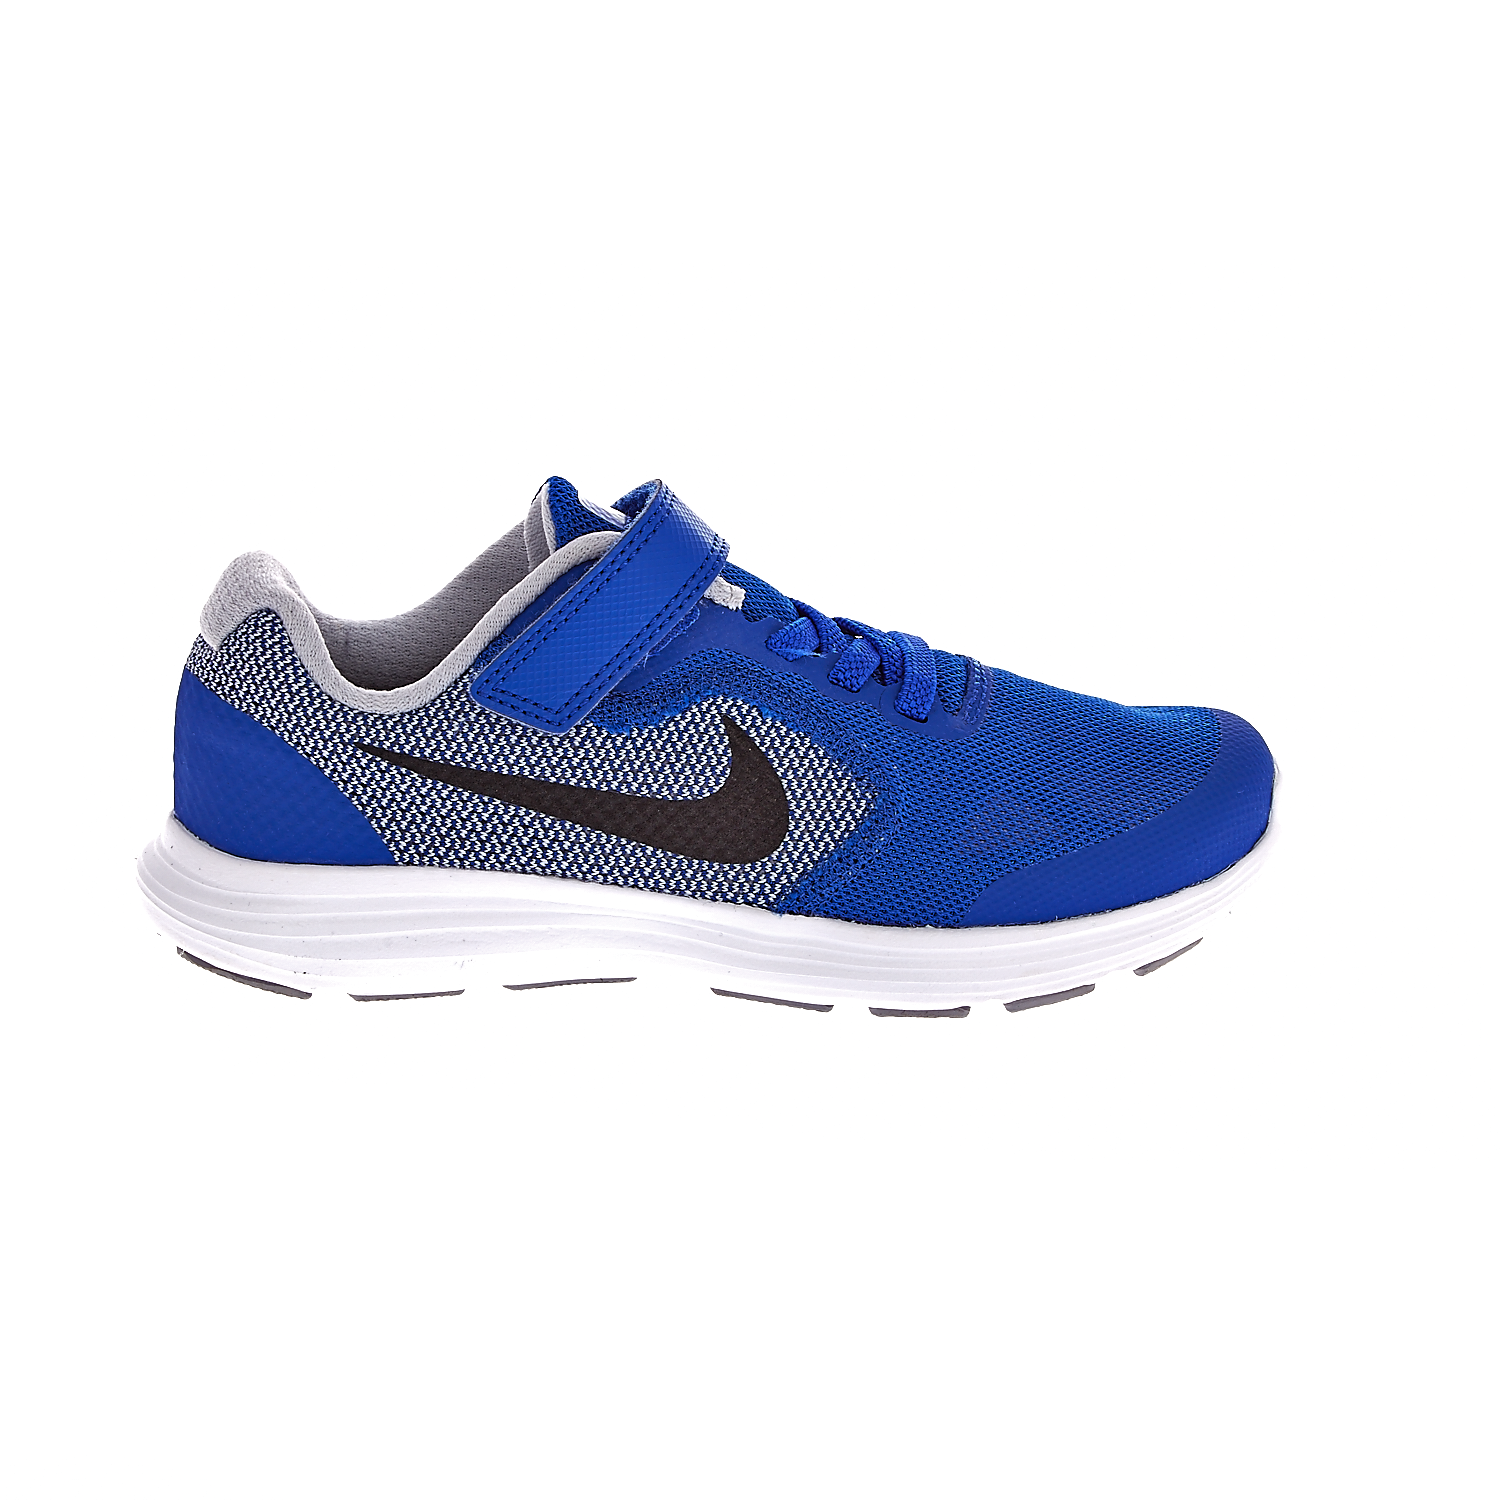 4c0ad8a72ba -24% Factory Outlet NIKE – Παιδικά αθλητικά παπούτσια NIKE REVOLUTION 3  σκούρο μπλε